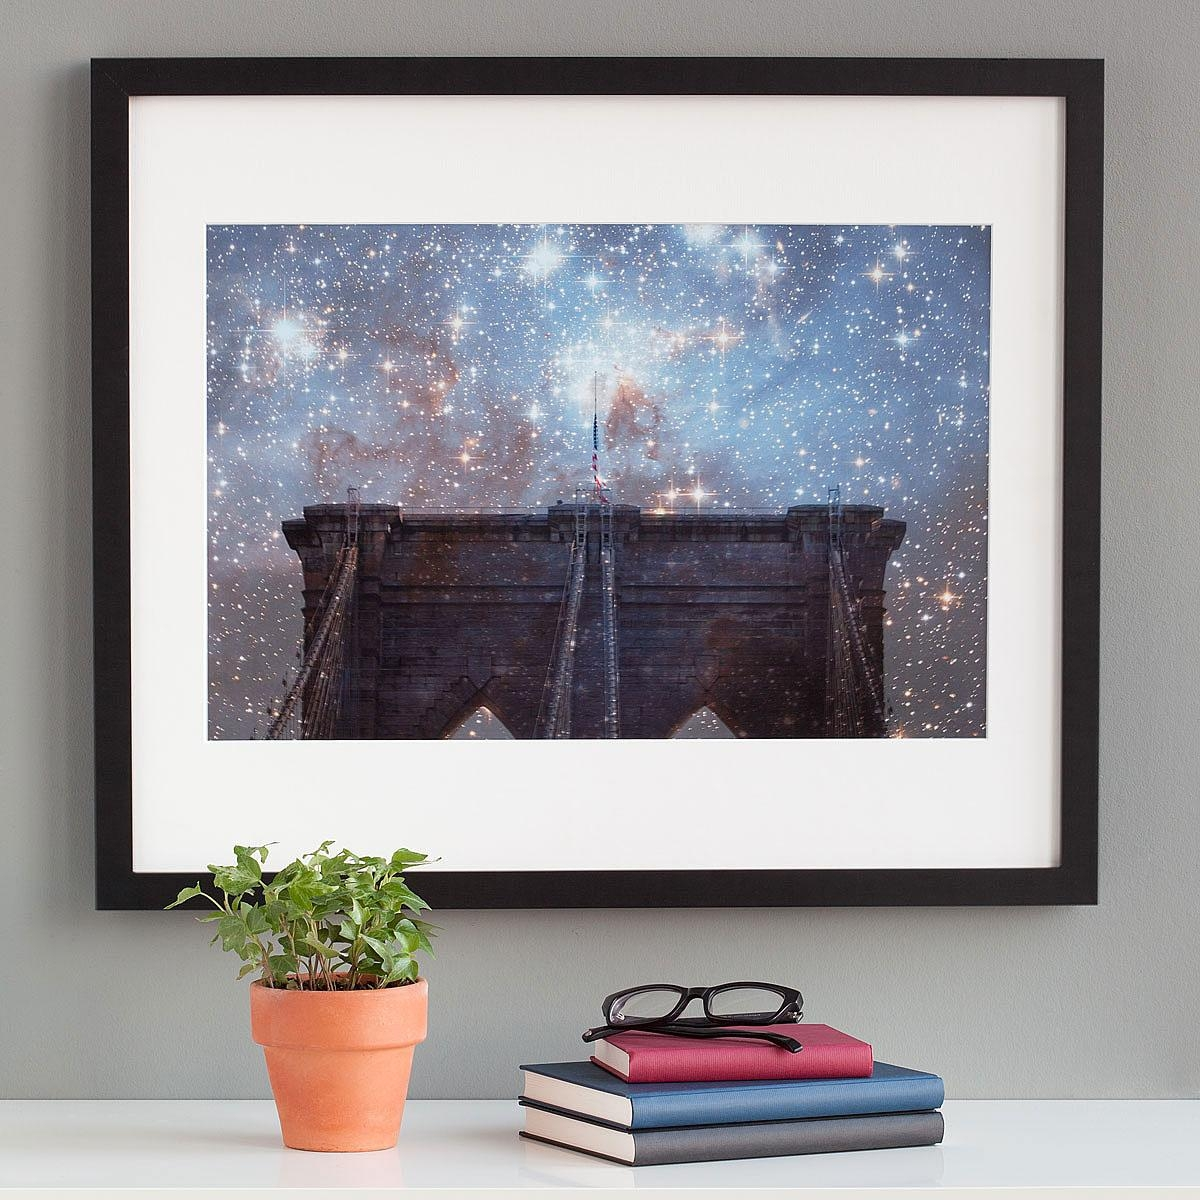 Unique Photography Art, Photo Wall Art | Uncommongoods In Photography Wall Art (Image 17 of 20)